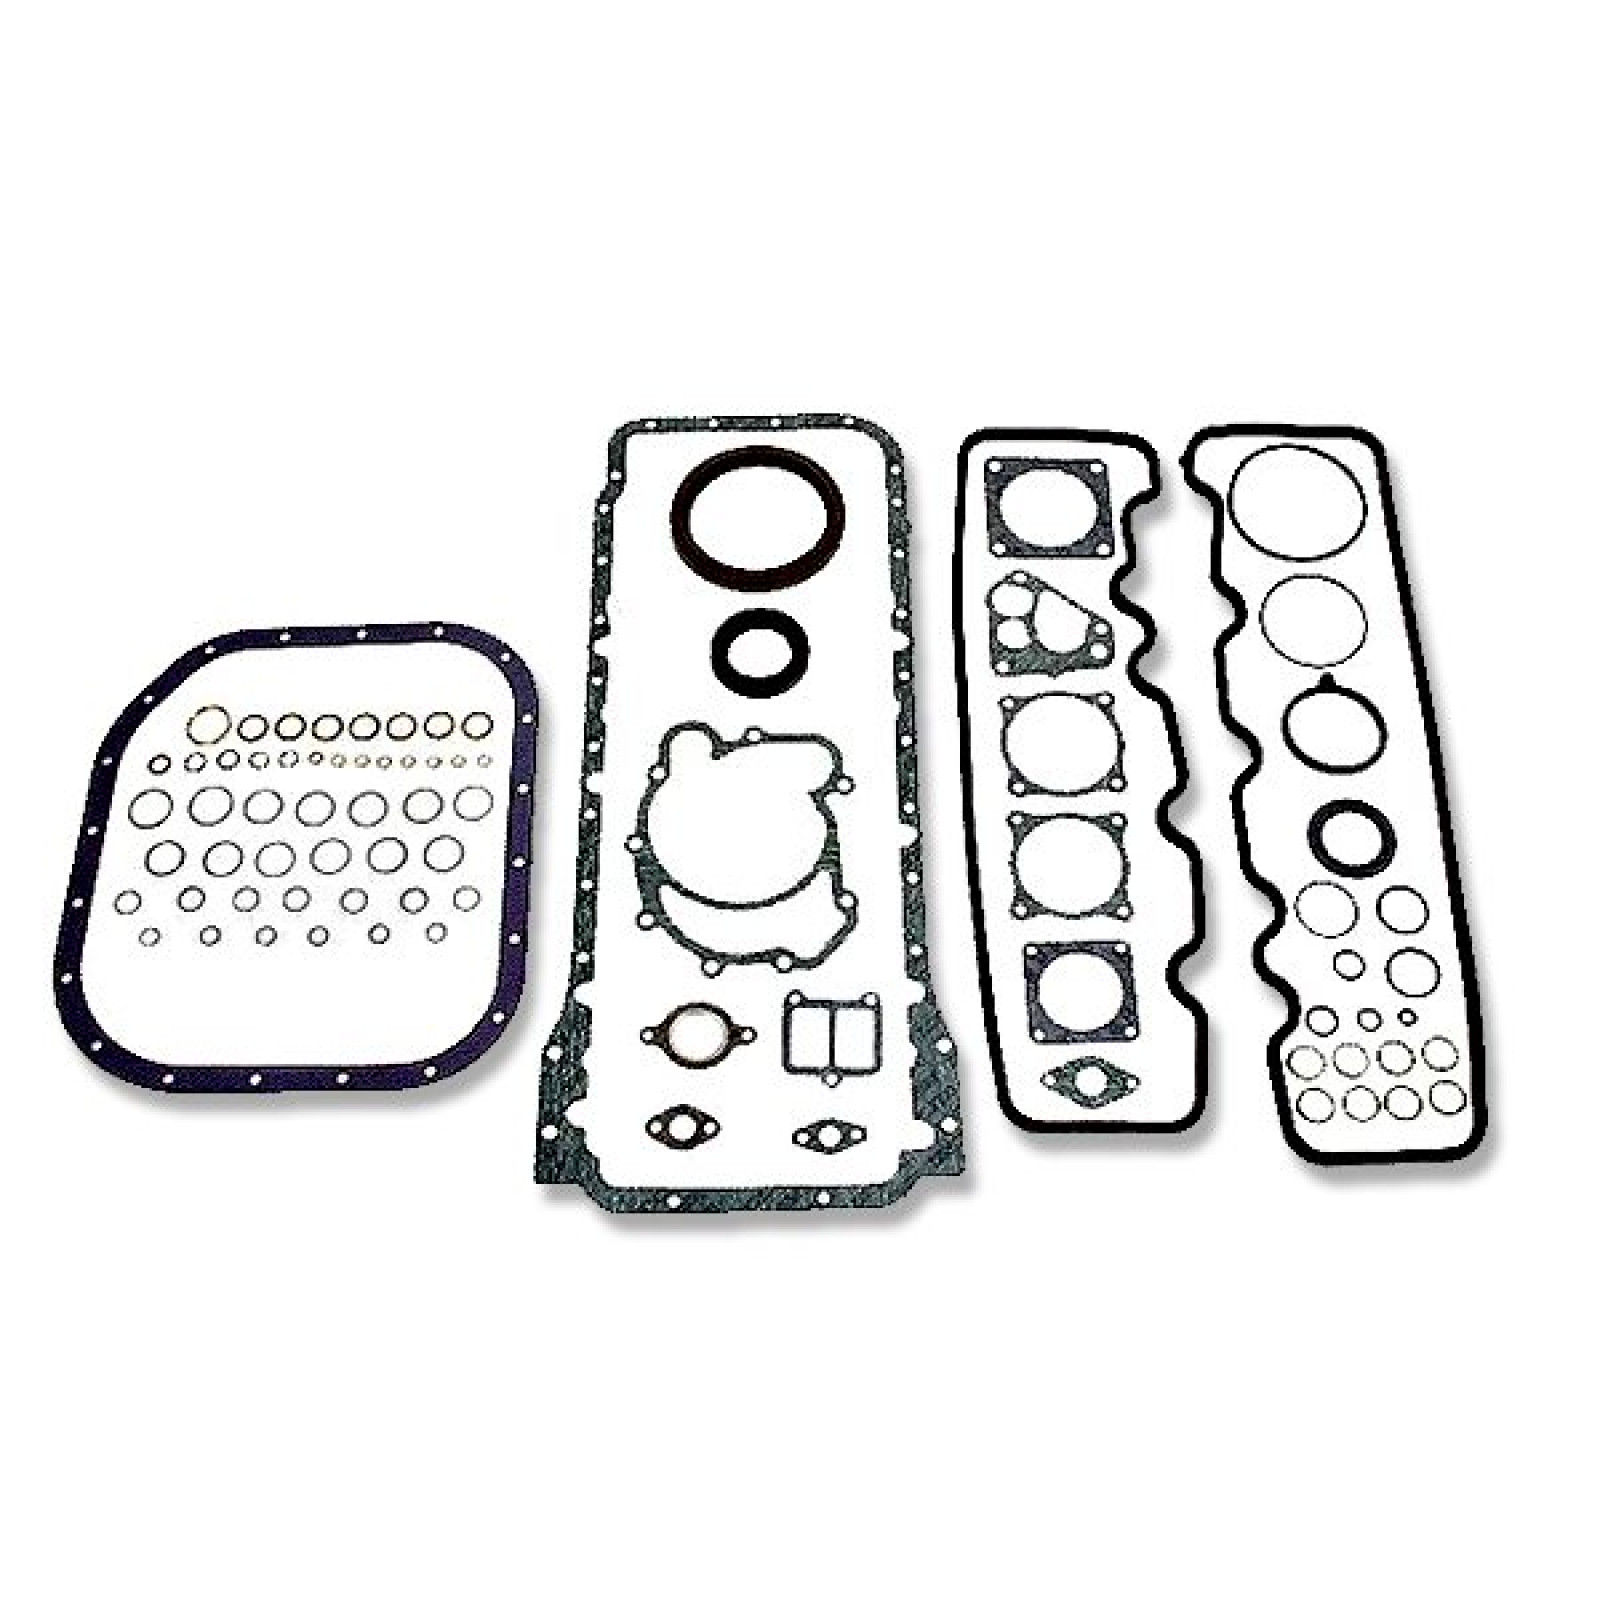 Mercedes-Benz M116 & M117 Engine Block Gasket Set